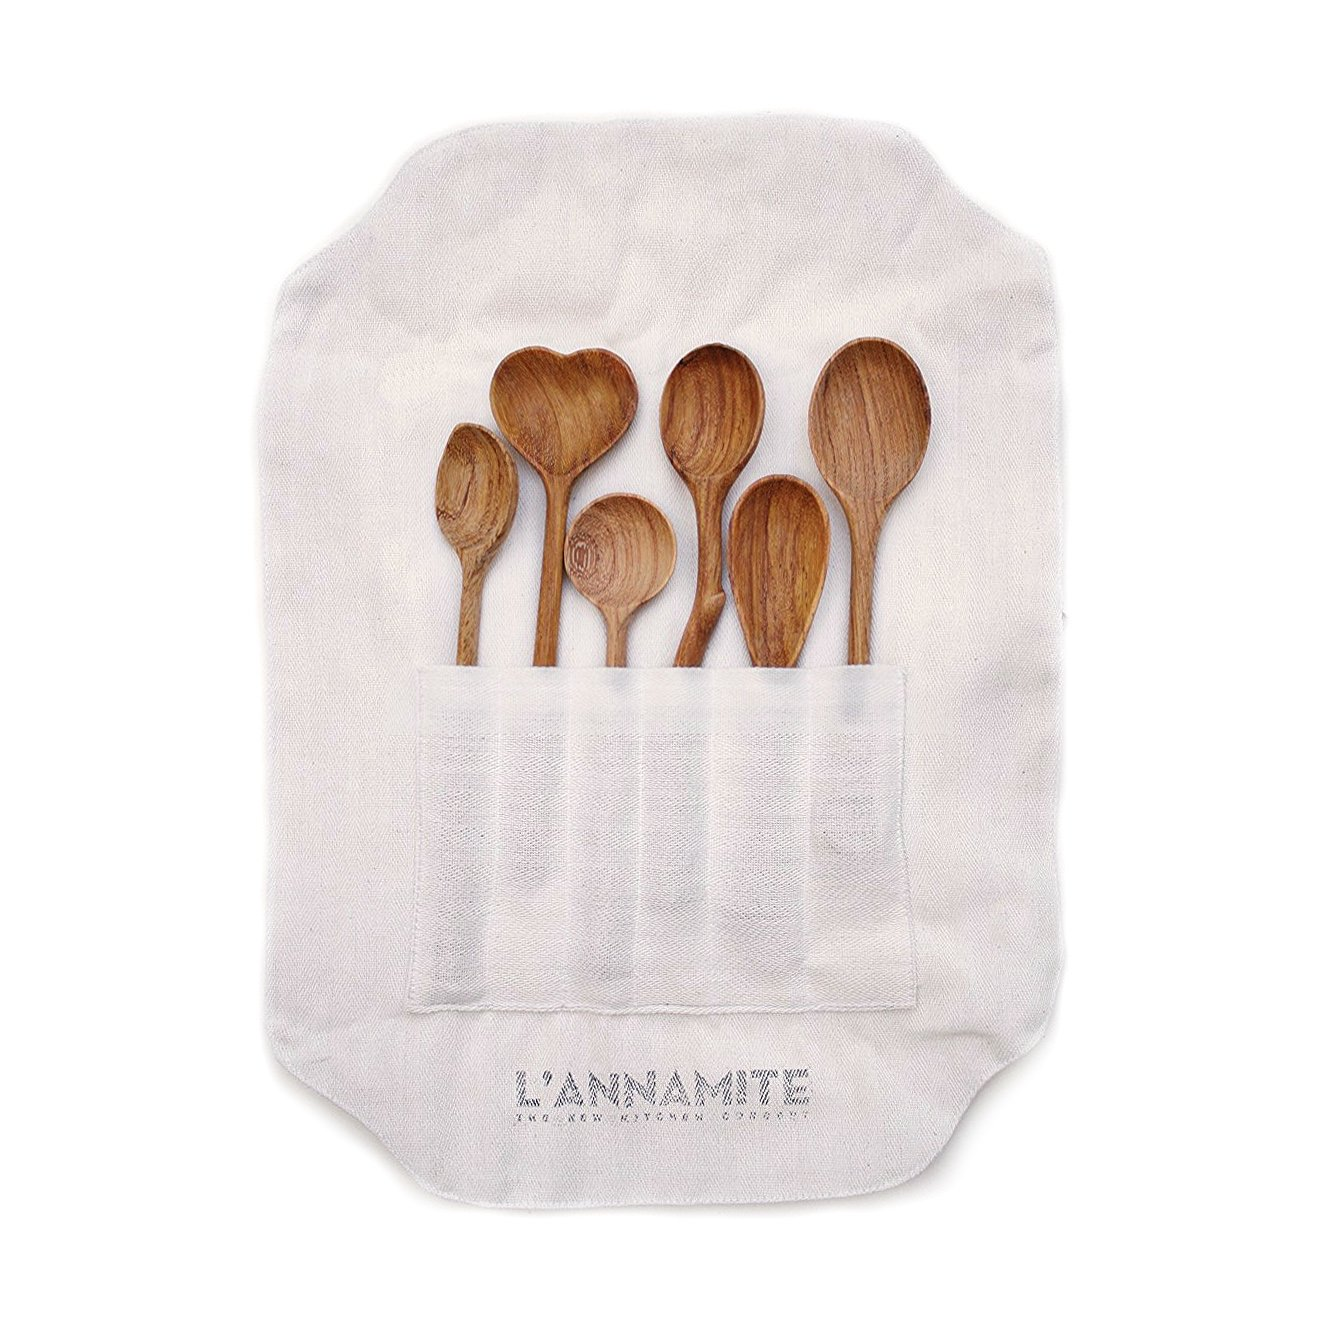 Wood Spoons Set 6 Pieces - Eco-Friendly Tableware Natural - Wooden Coffee Tea - Organic Bamboo - Great Gift For Chefs & Foodies - By L'ANNAMITE